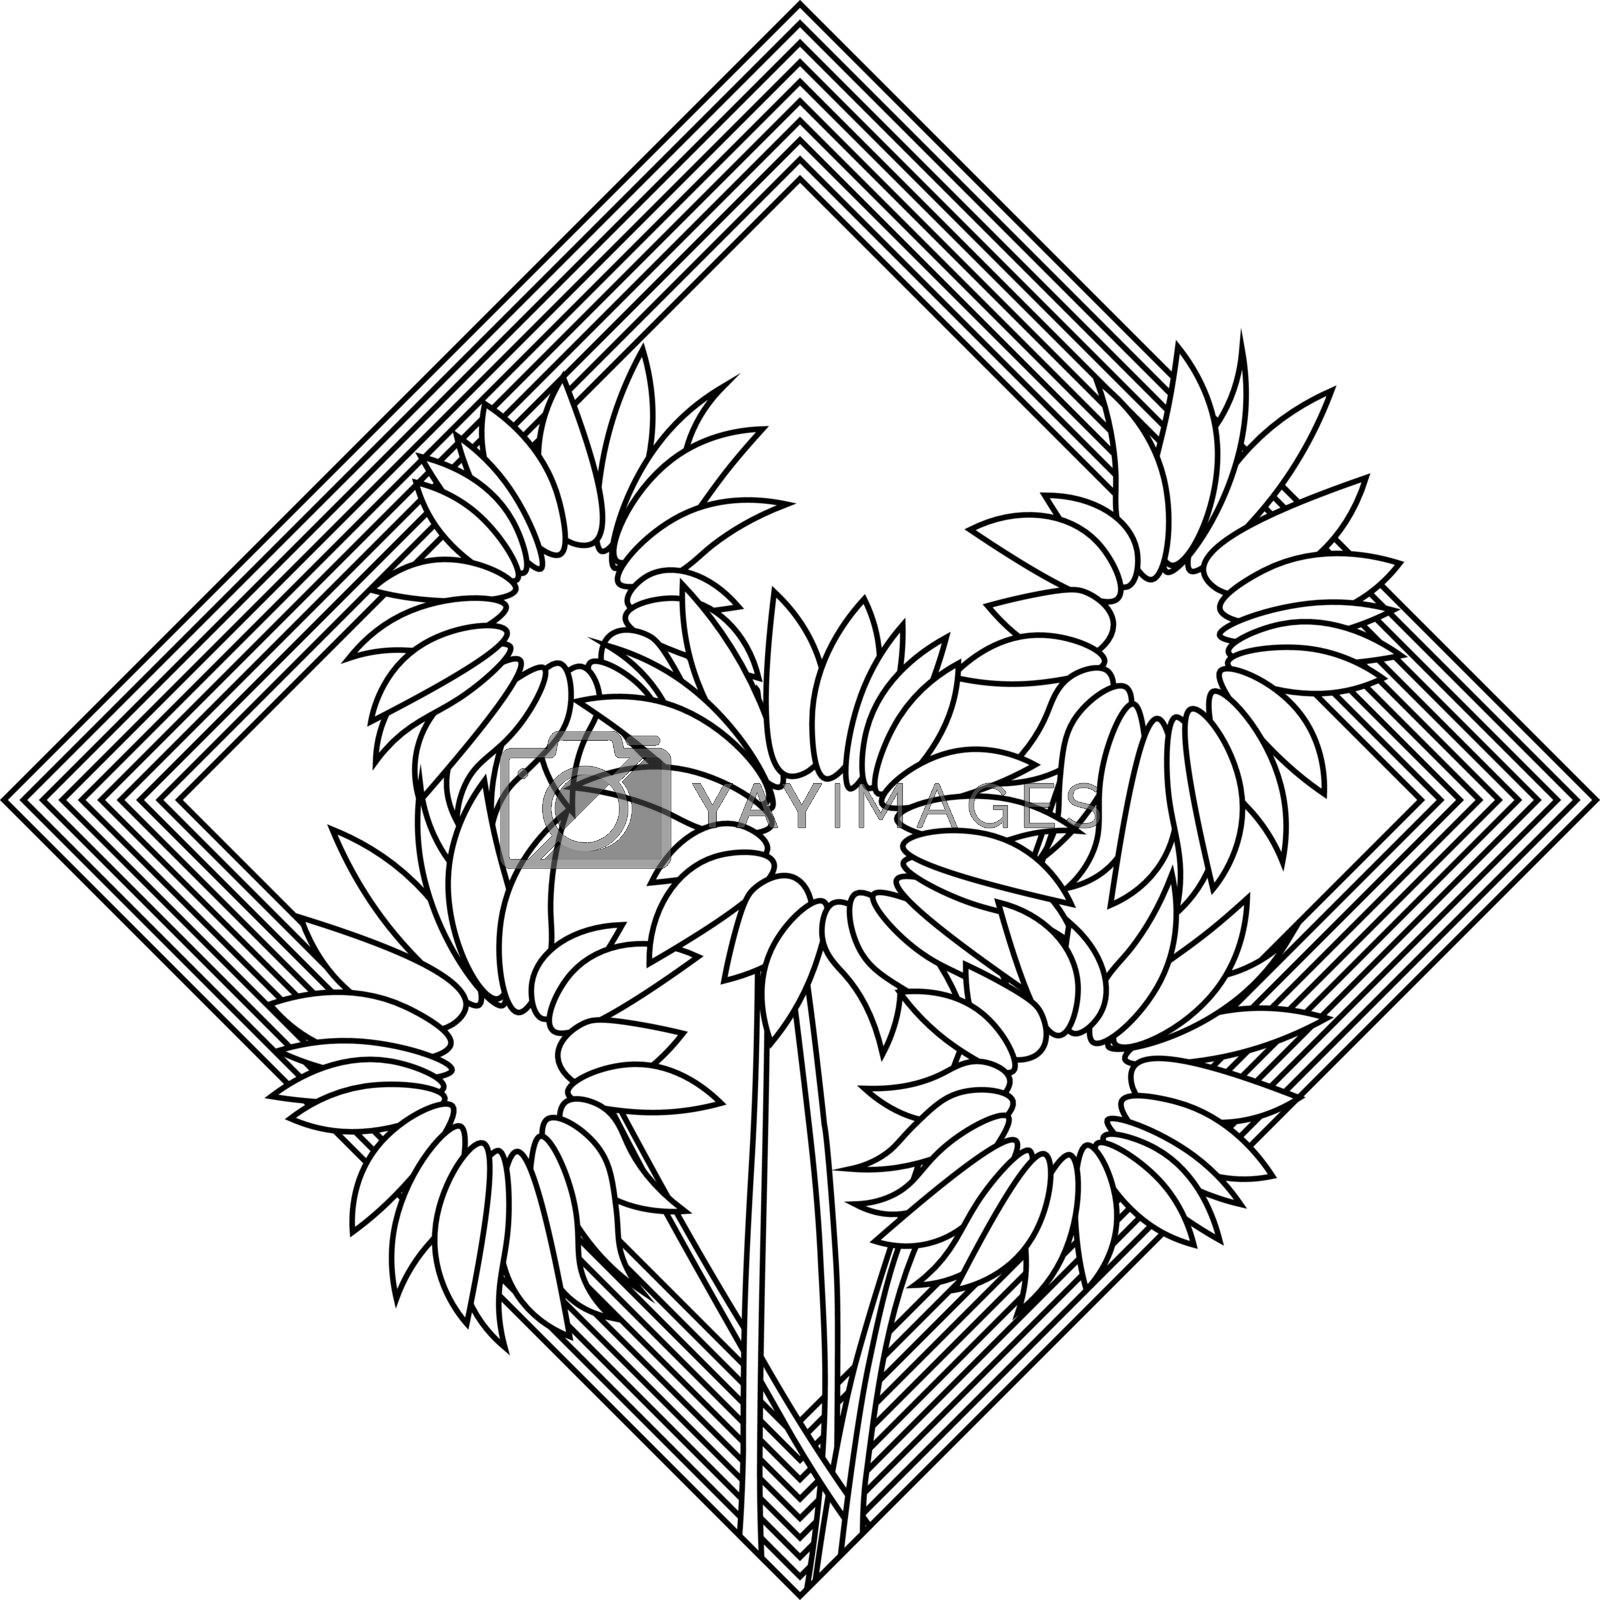 line art of sunflowers bouquet in geometric frame by paranoido